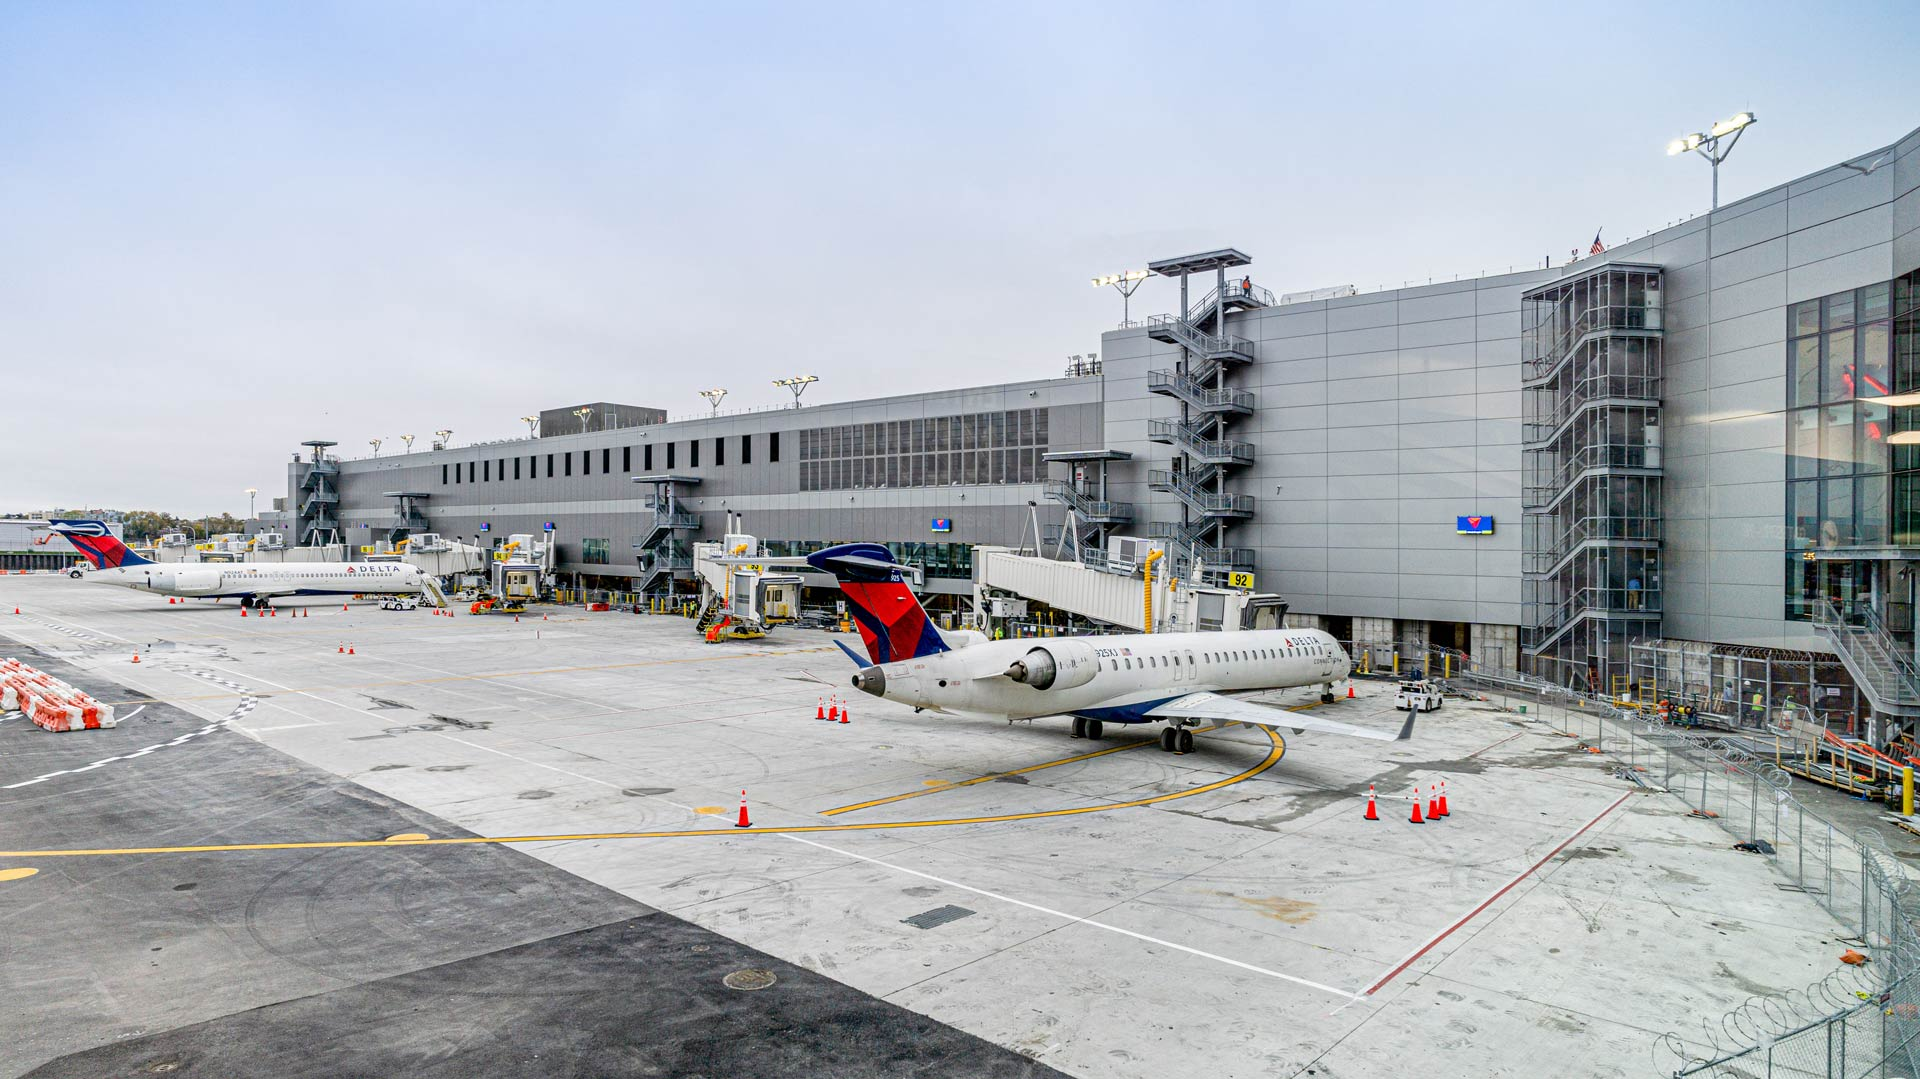 Exterior of Delta's new Concourse G at LGA